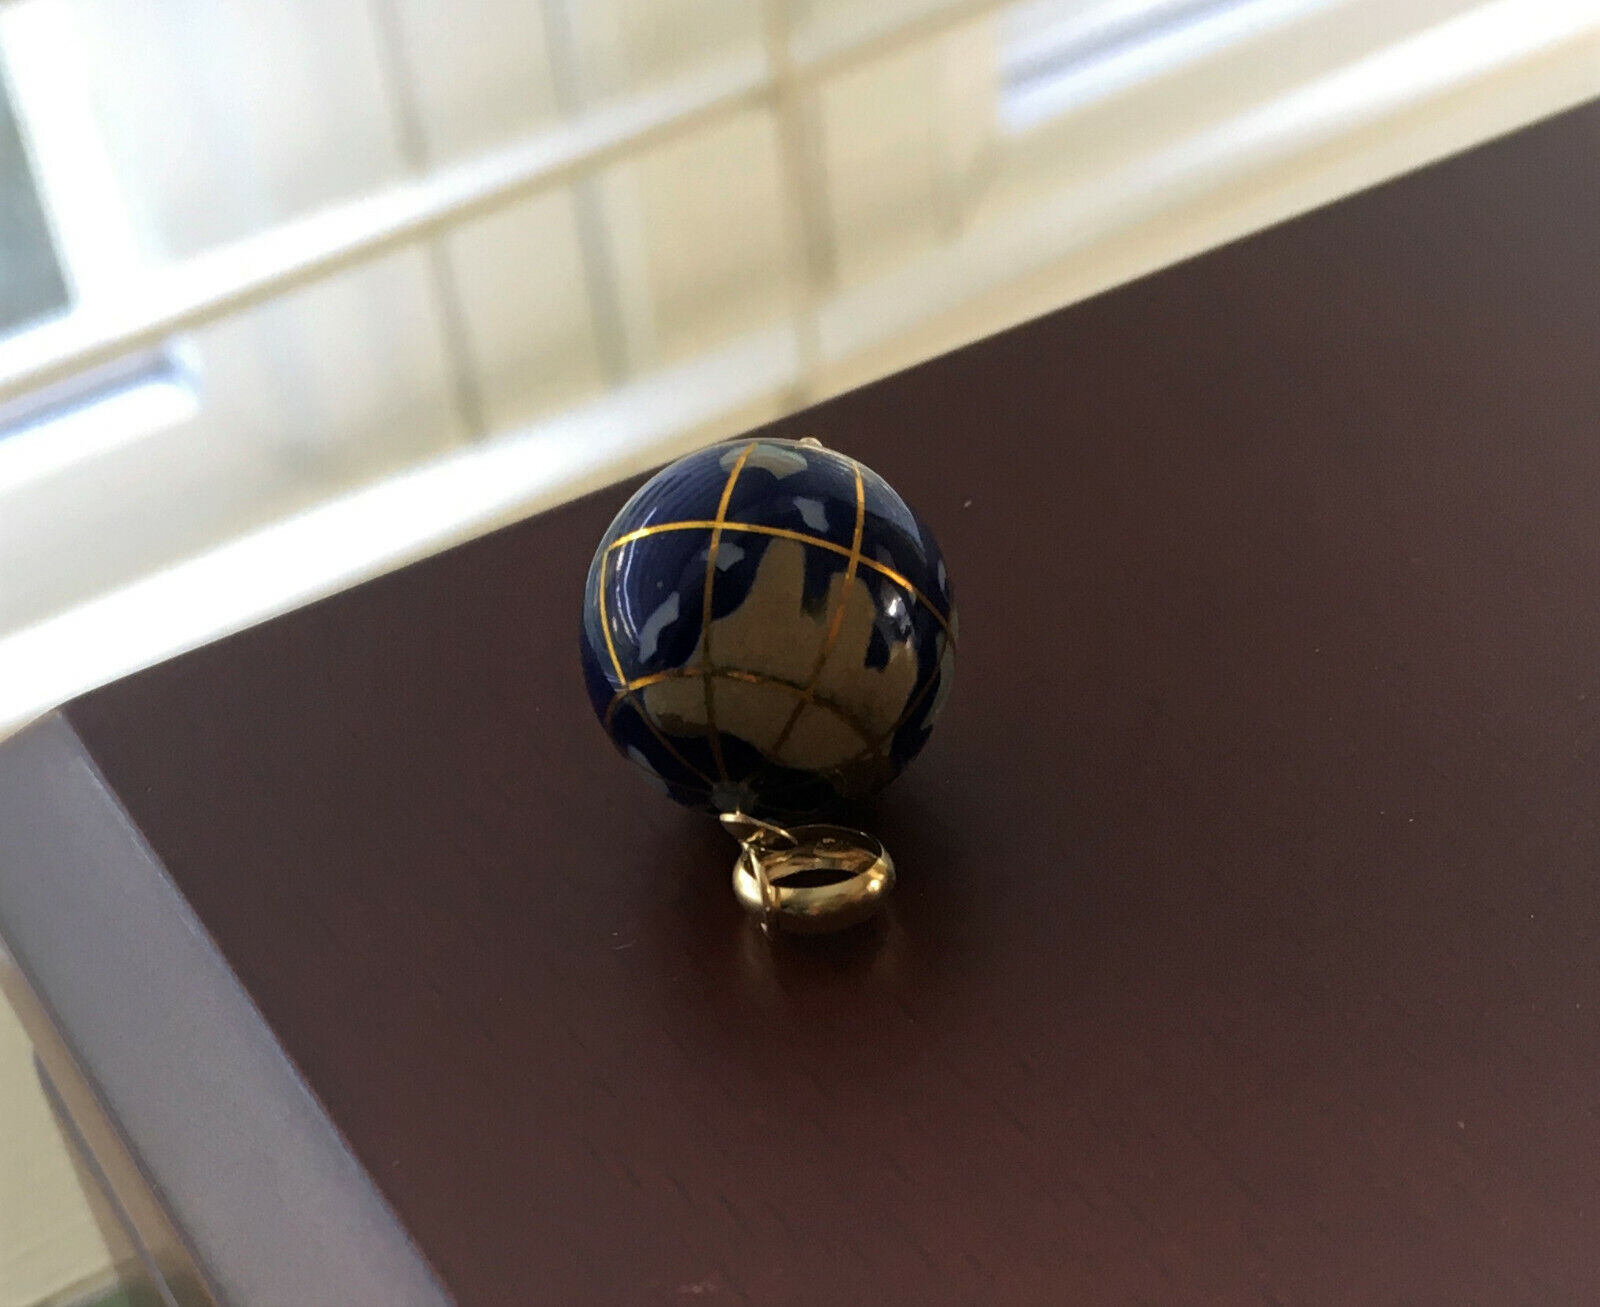 14K Yellow Gold Lapis Lazuli Agate Inlay Atlas Globe Charm Pendant - $252.50